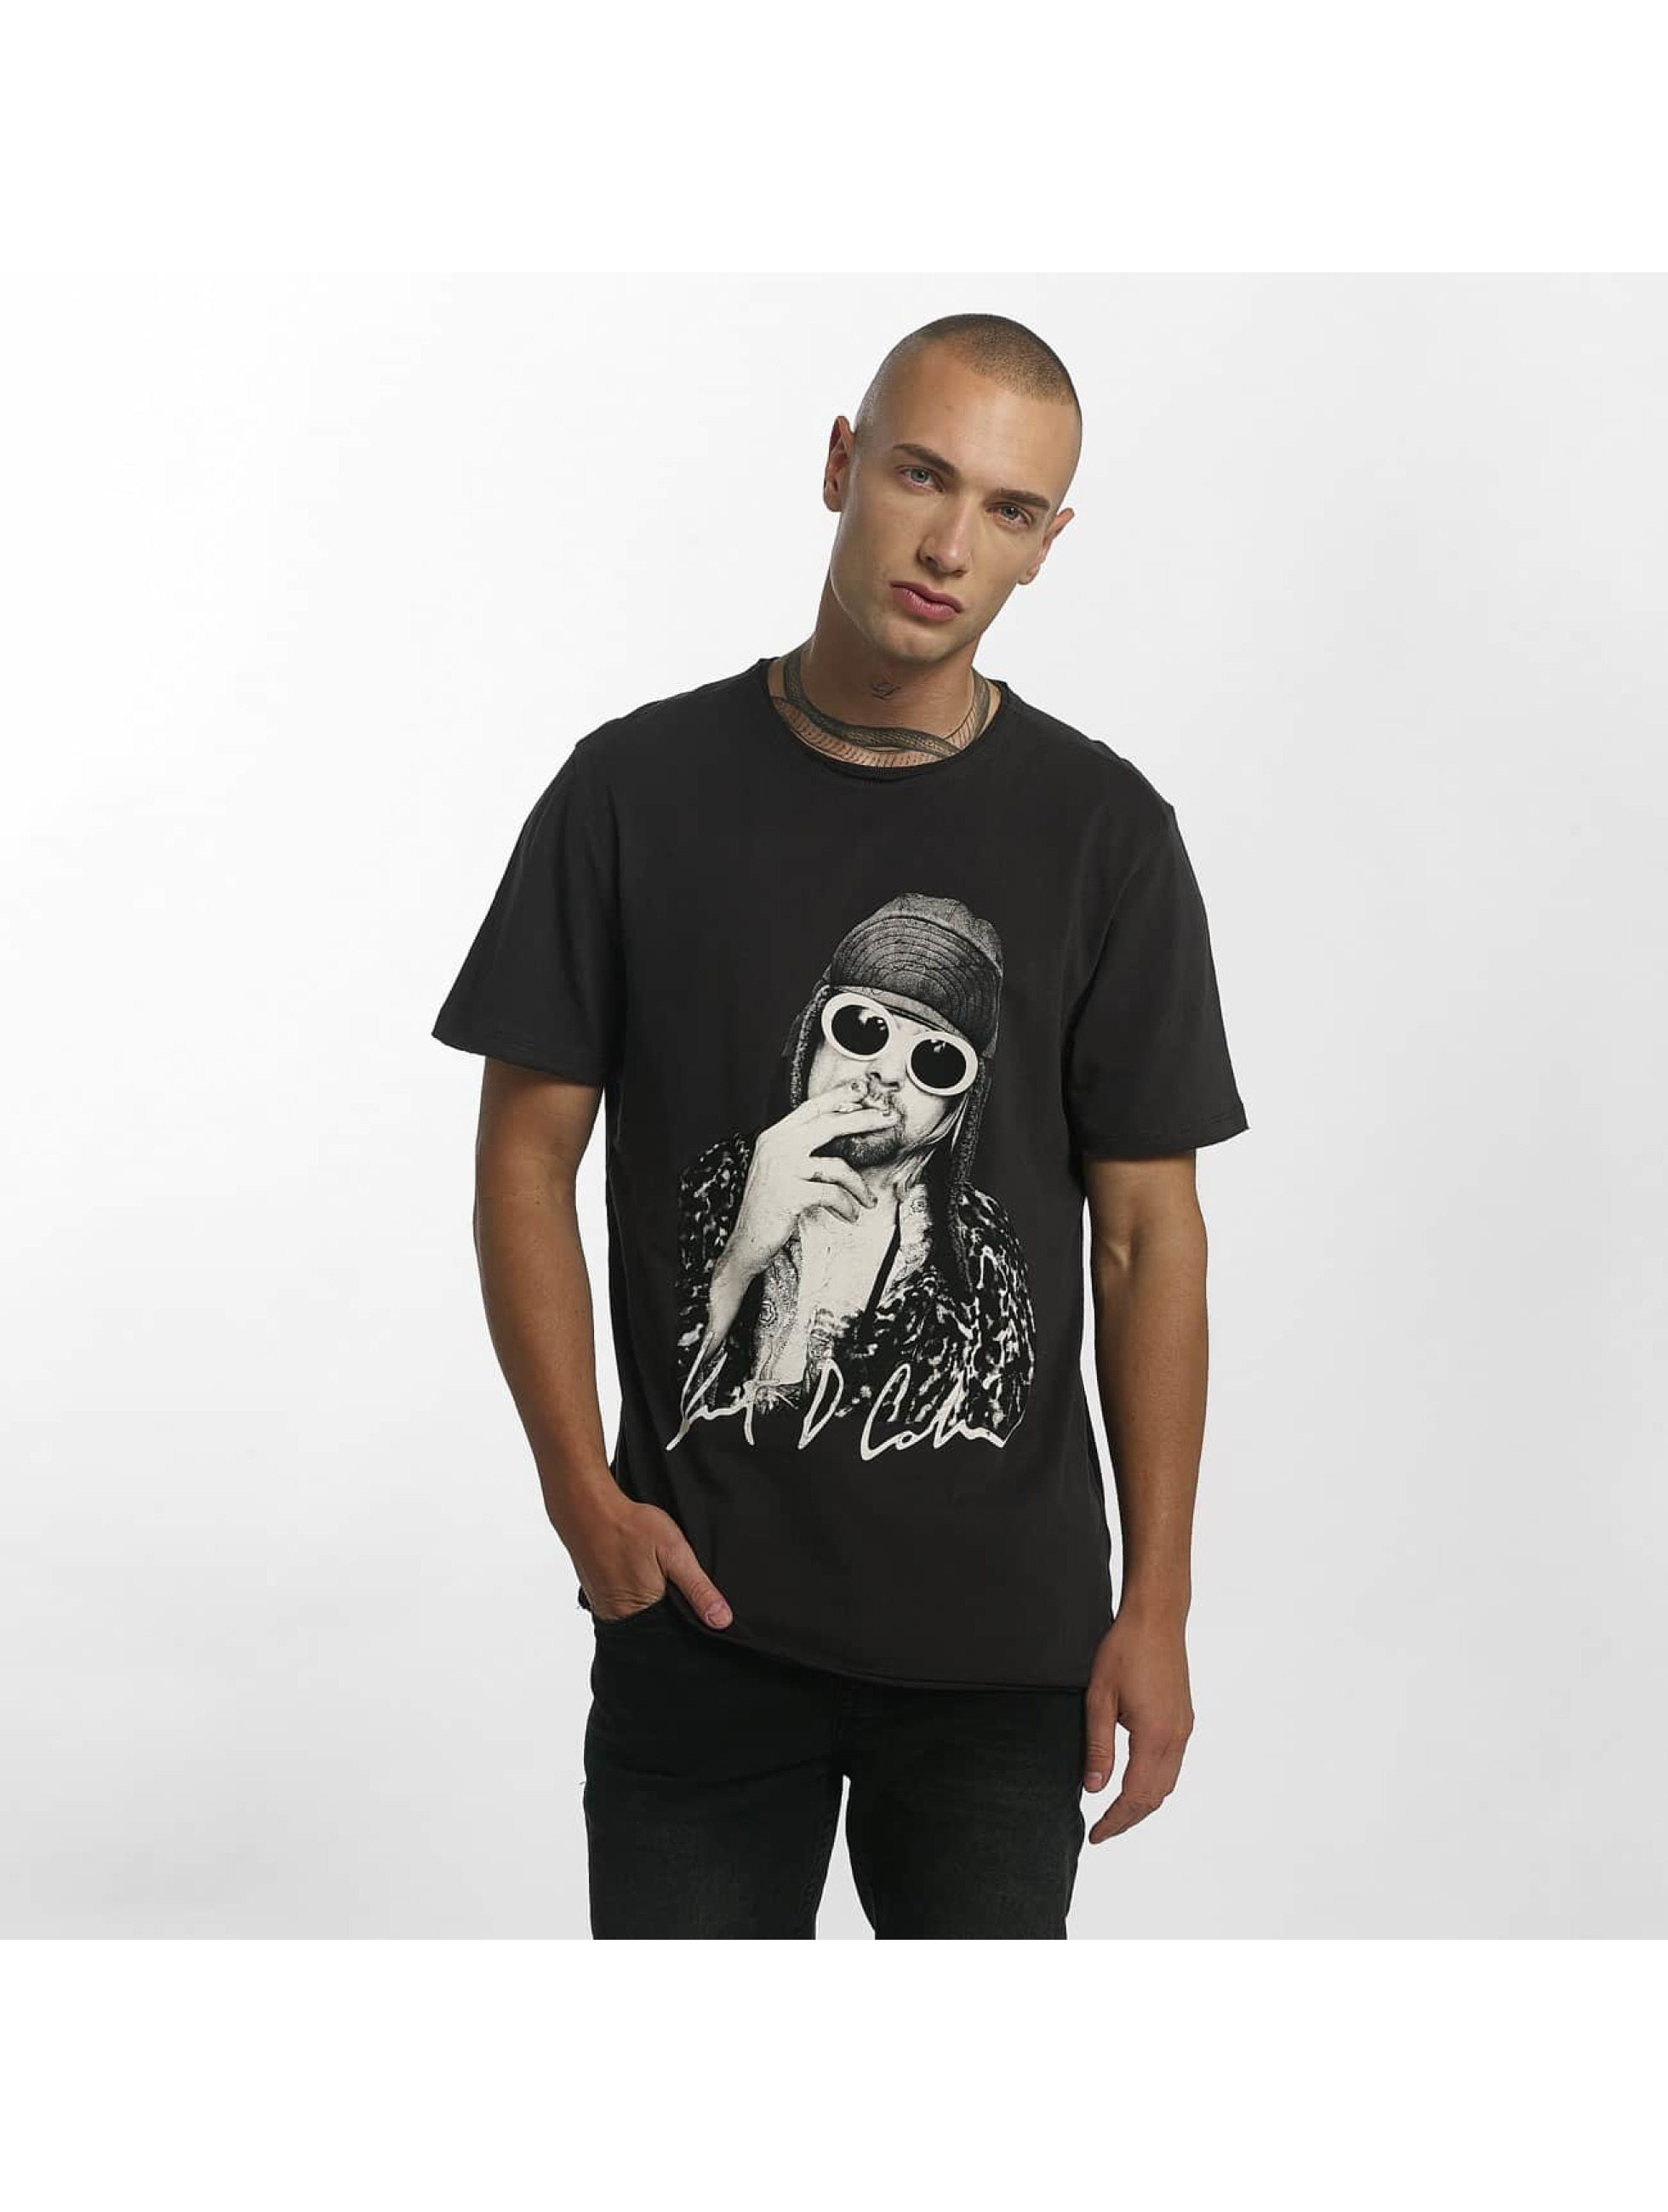 Amplified T-Shirt Kurt Cobain Photograph grey